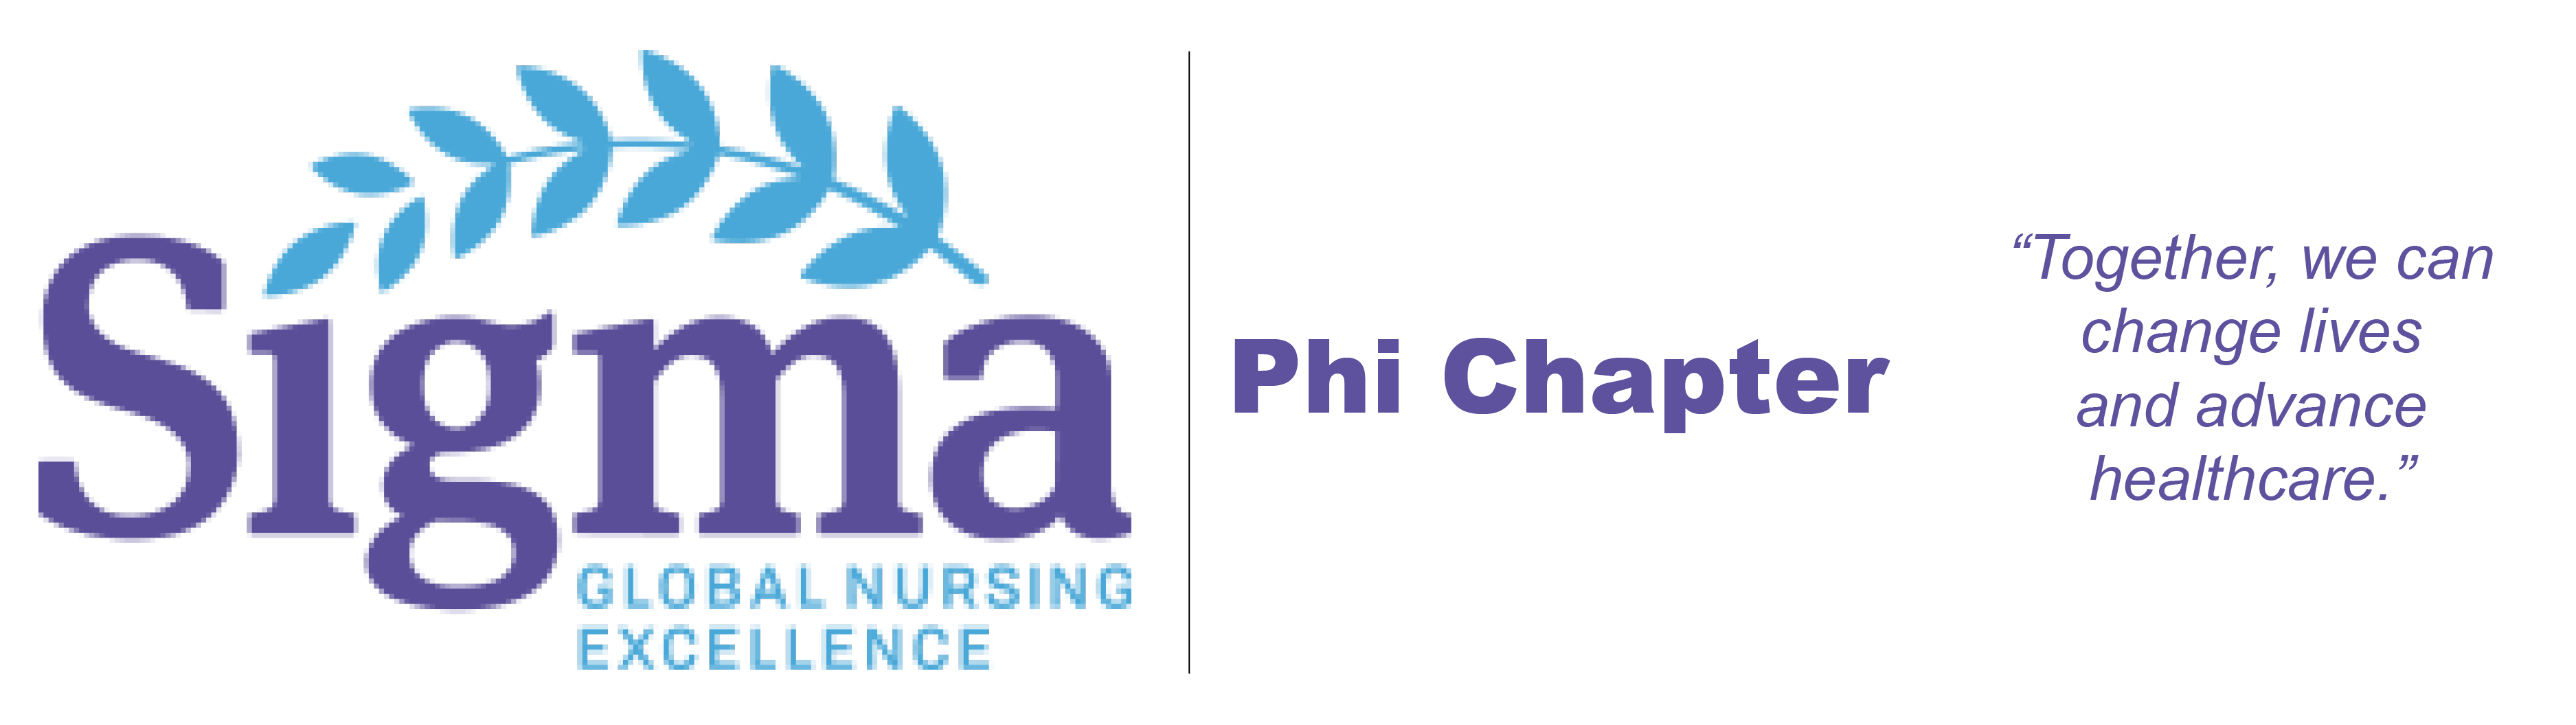 "Sigma Theta Tau Phi Chapter logo with quote ""Together, we can change lives and advance healthcare."""